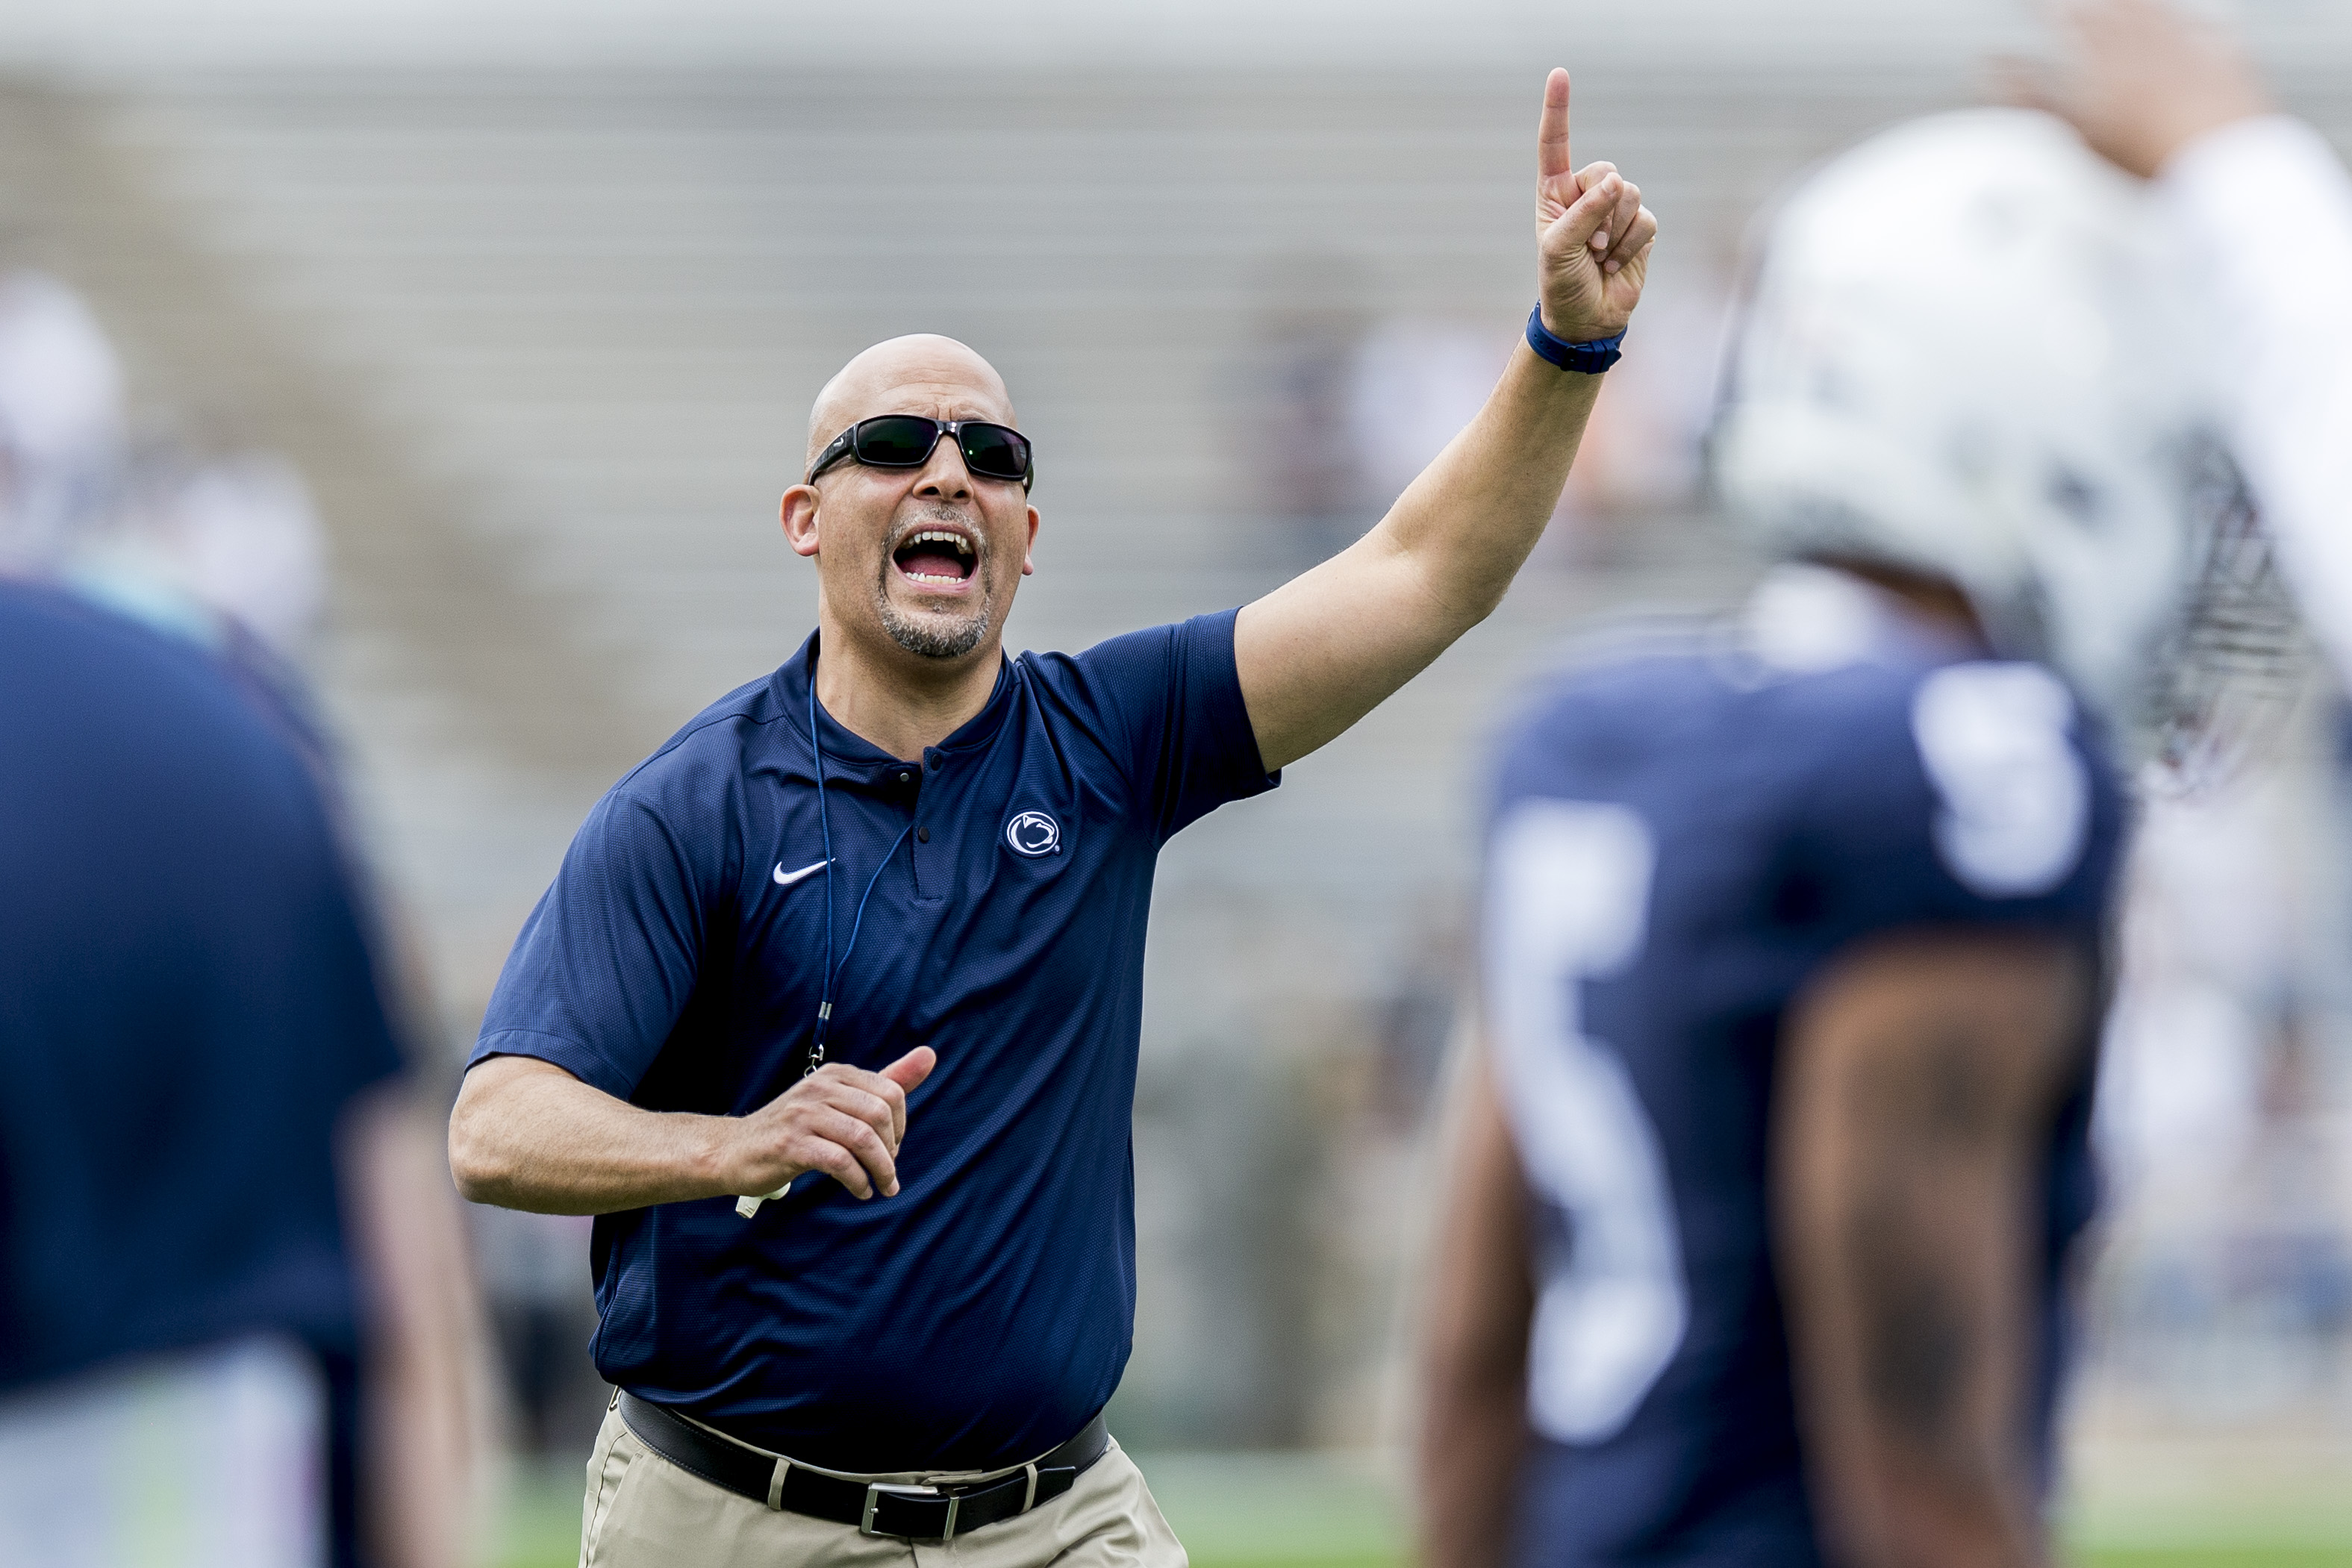 James Franklin called Big Ten's best coach; Penn State D-line could rank among nation's best, and more